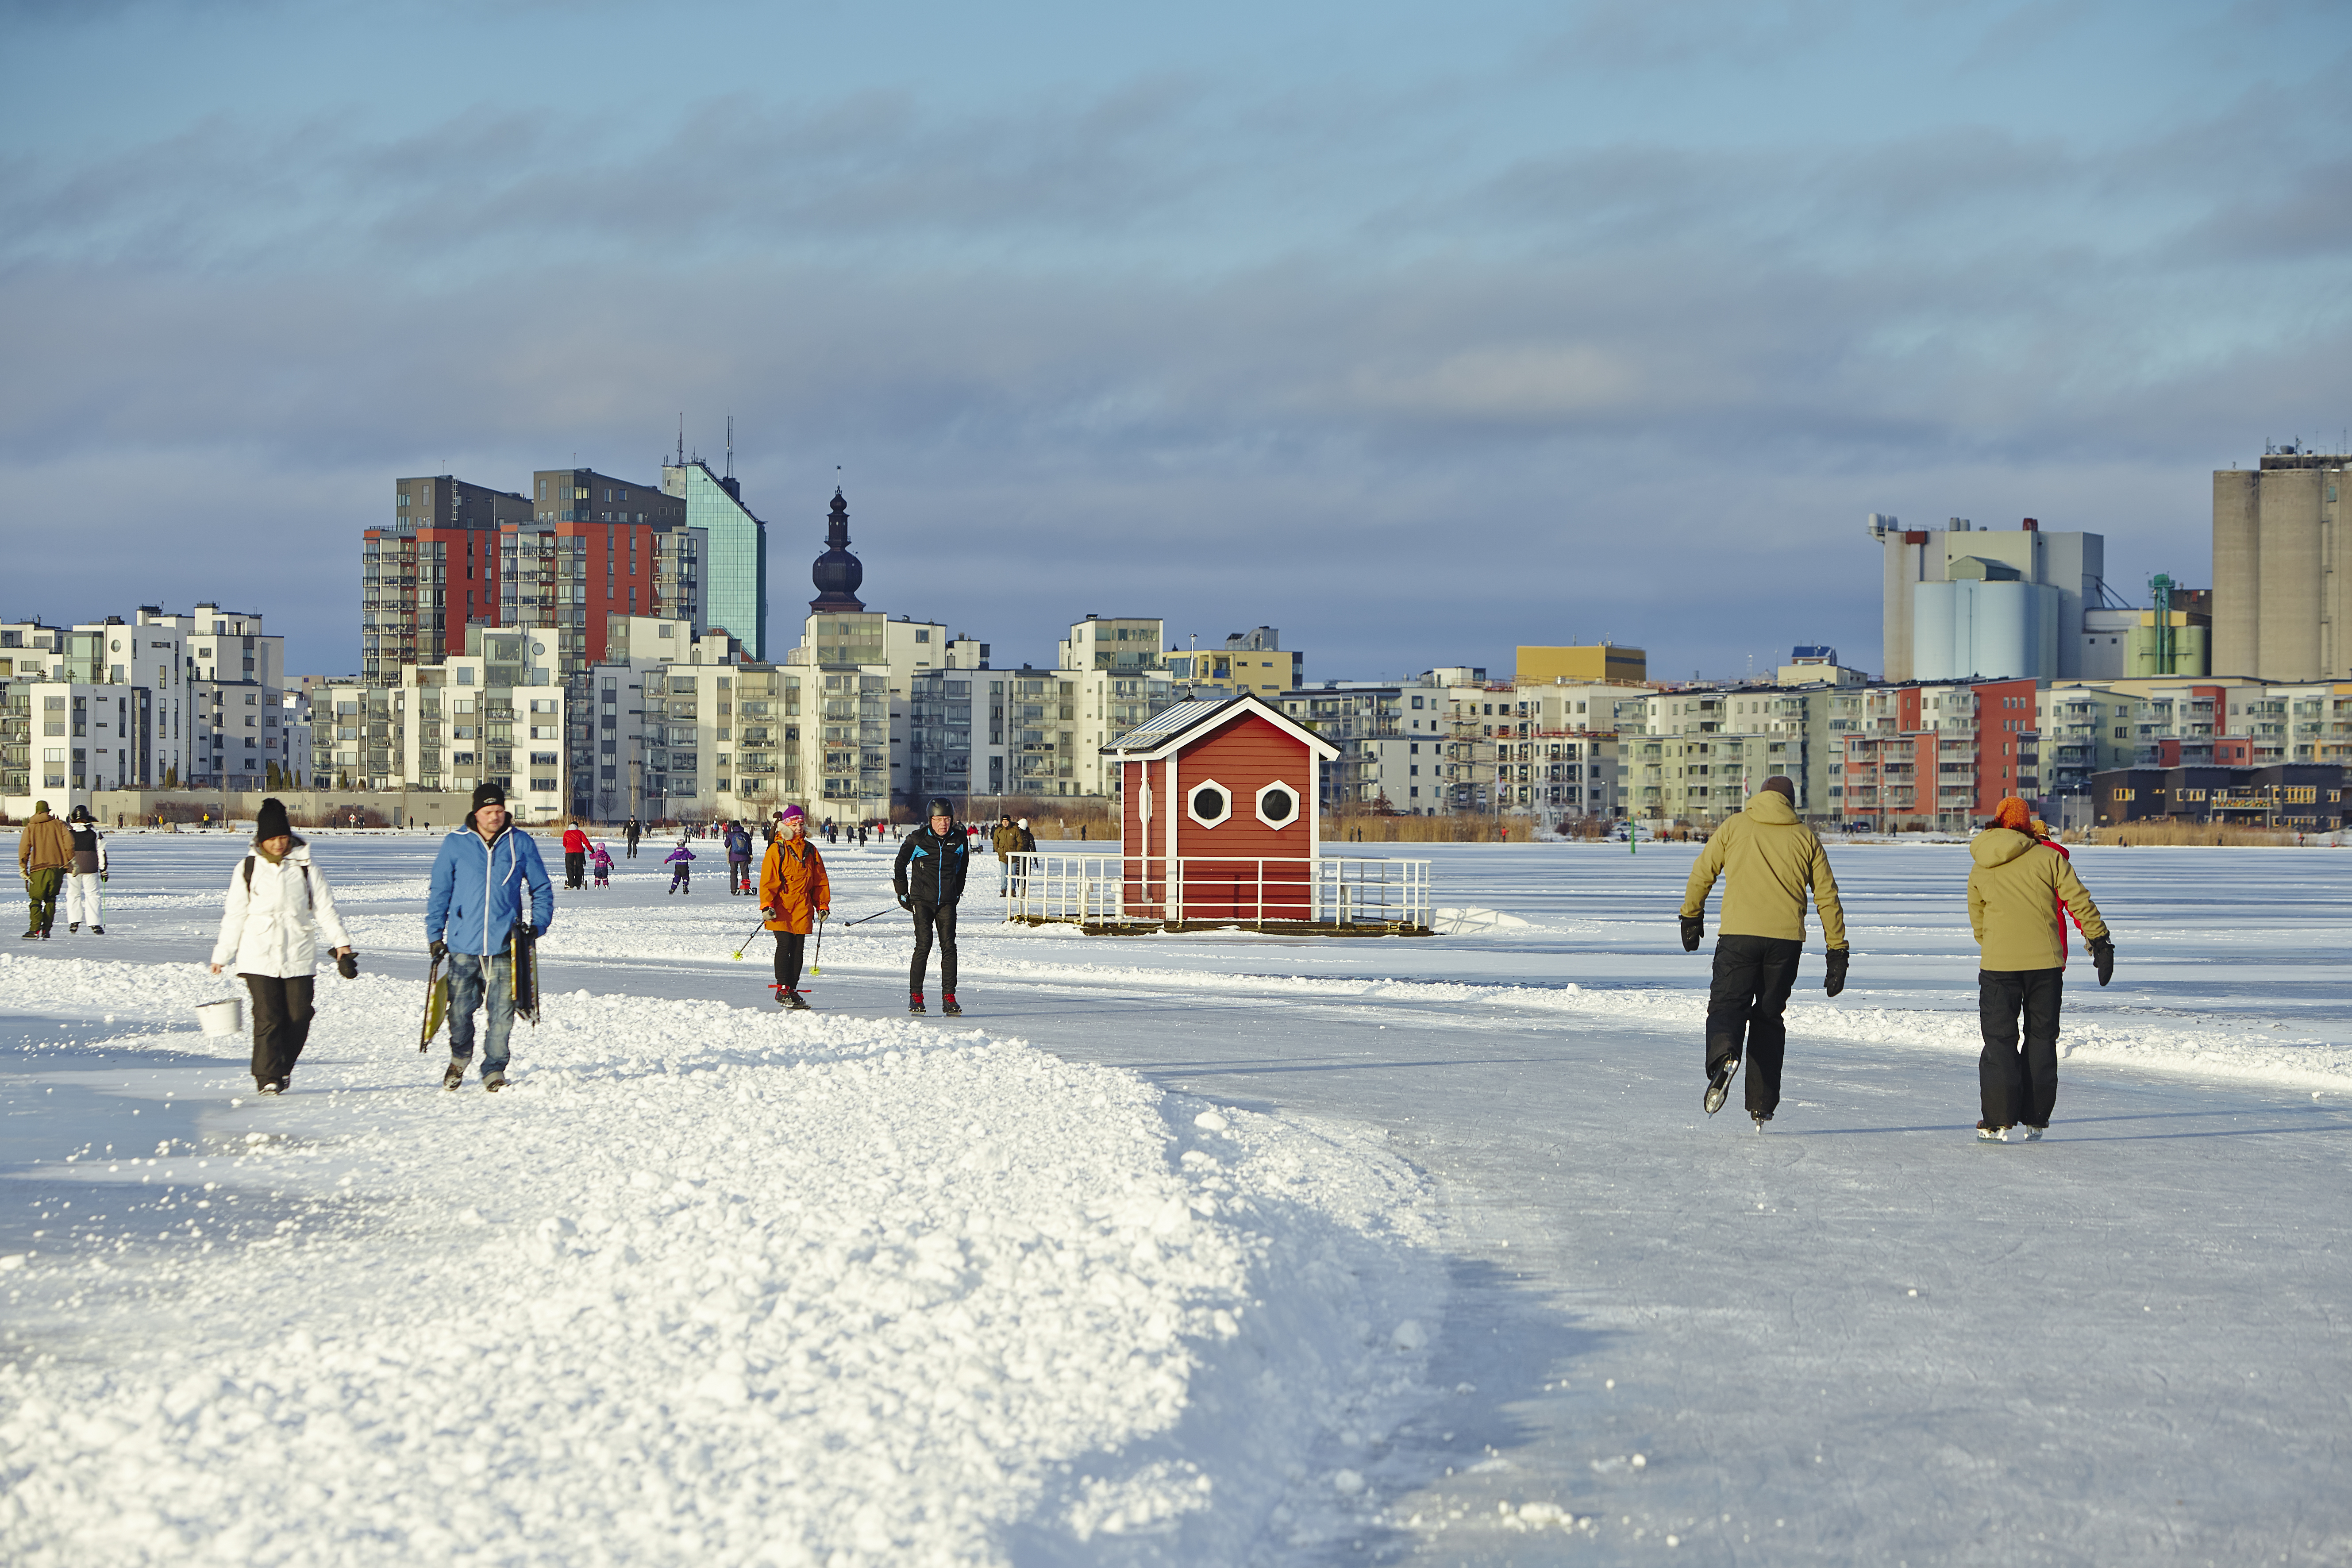 Showing Utter Inn during winter where people are skating on the frozen lake